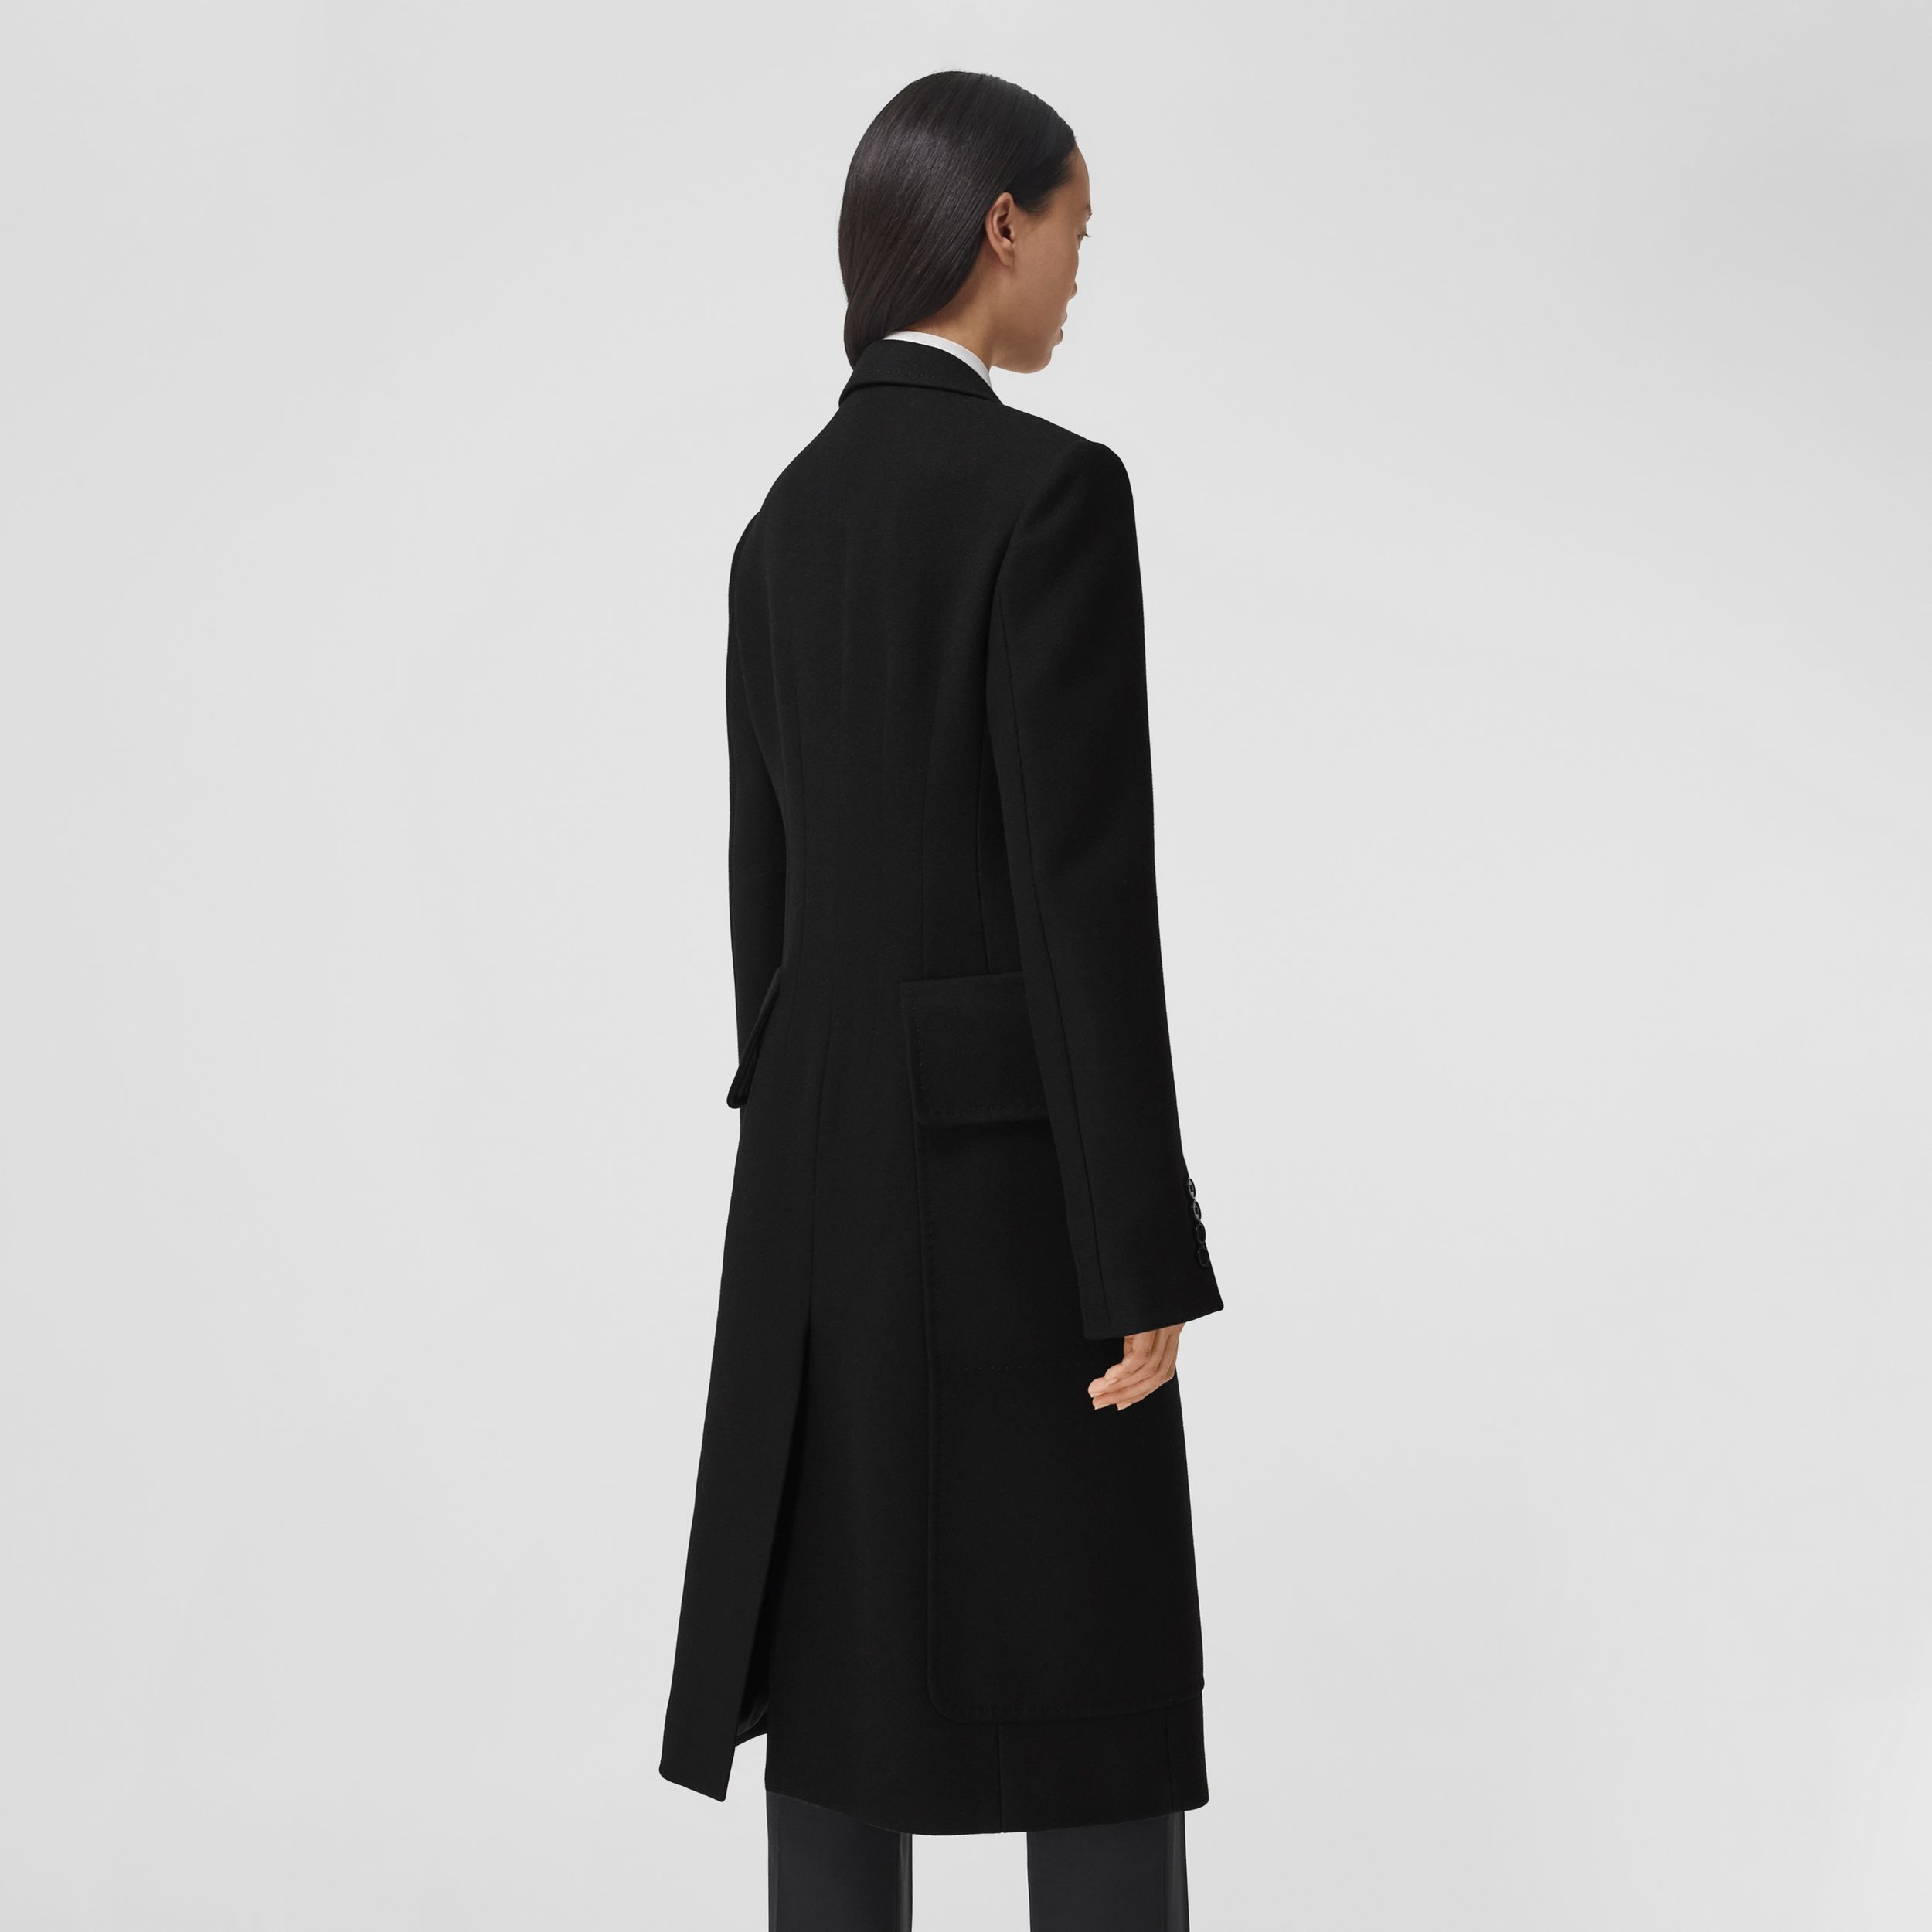 Camel Hair Wool Tailored Coat in Black - Women | Burberry - 3